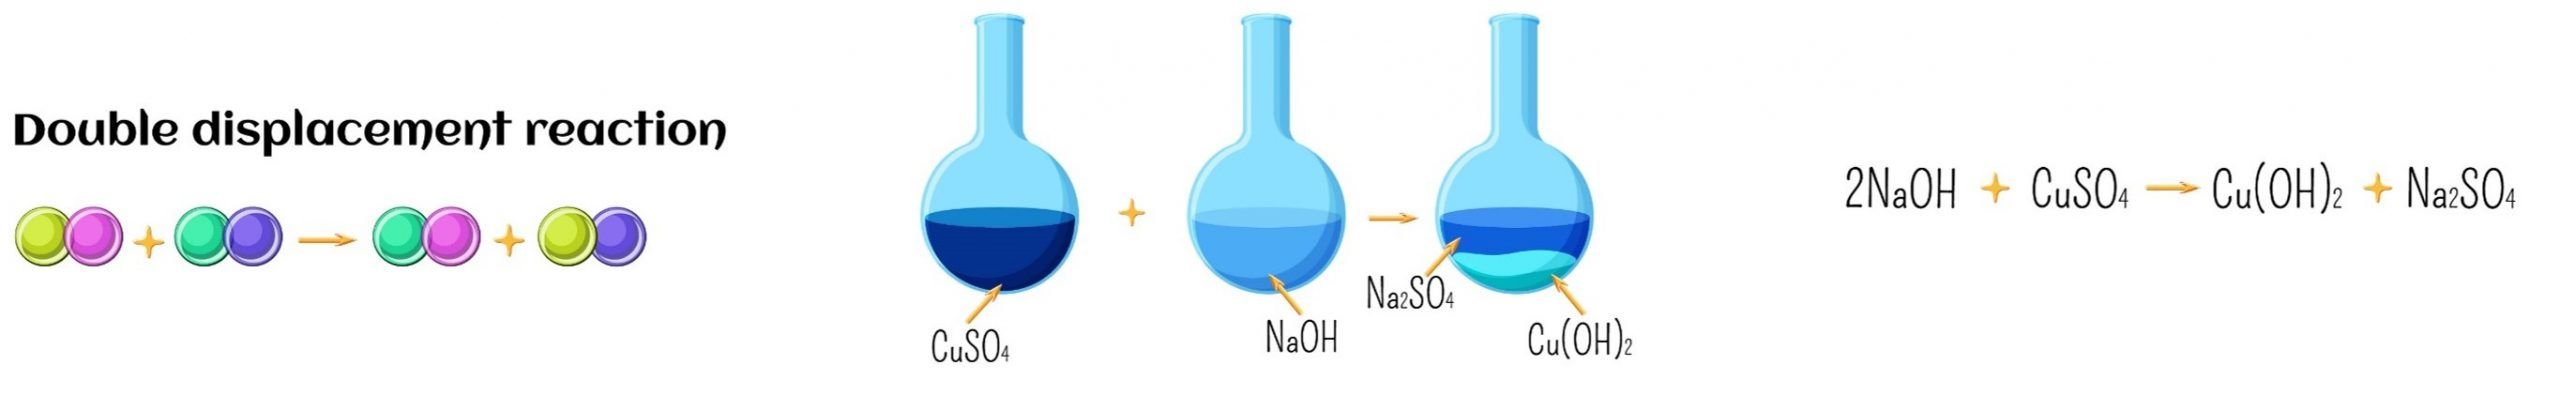 double d reaction scaled - Section 5: Chemical Reactions - Rates, Type, and Energy